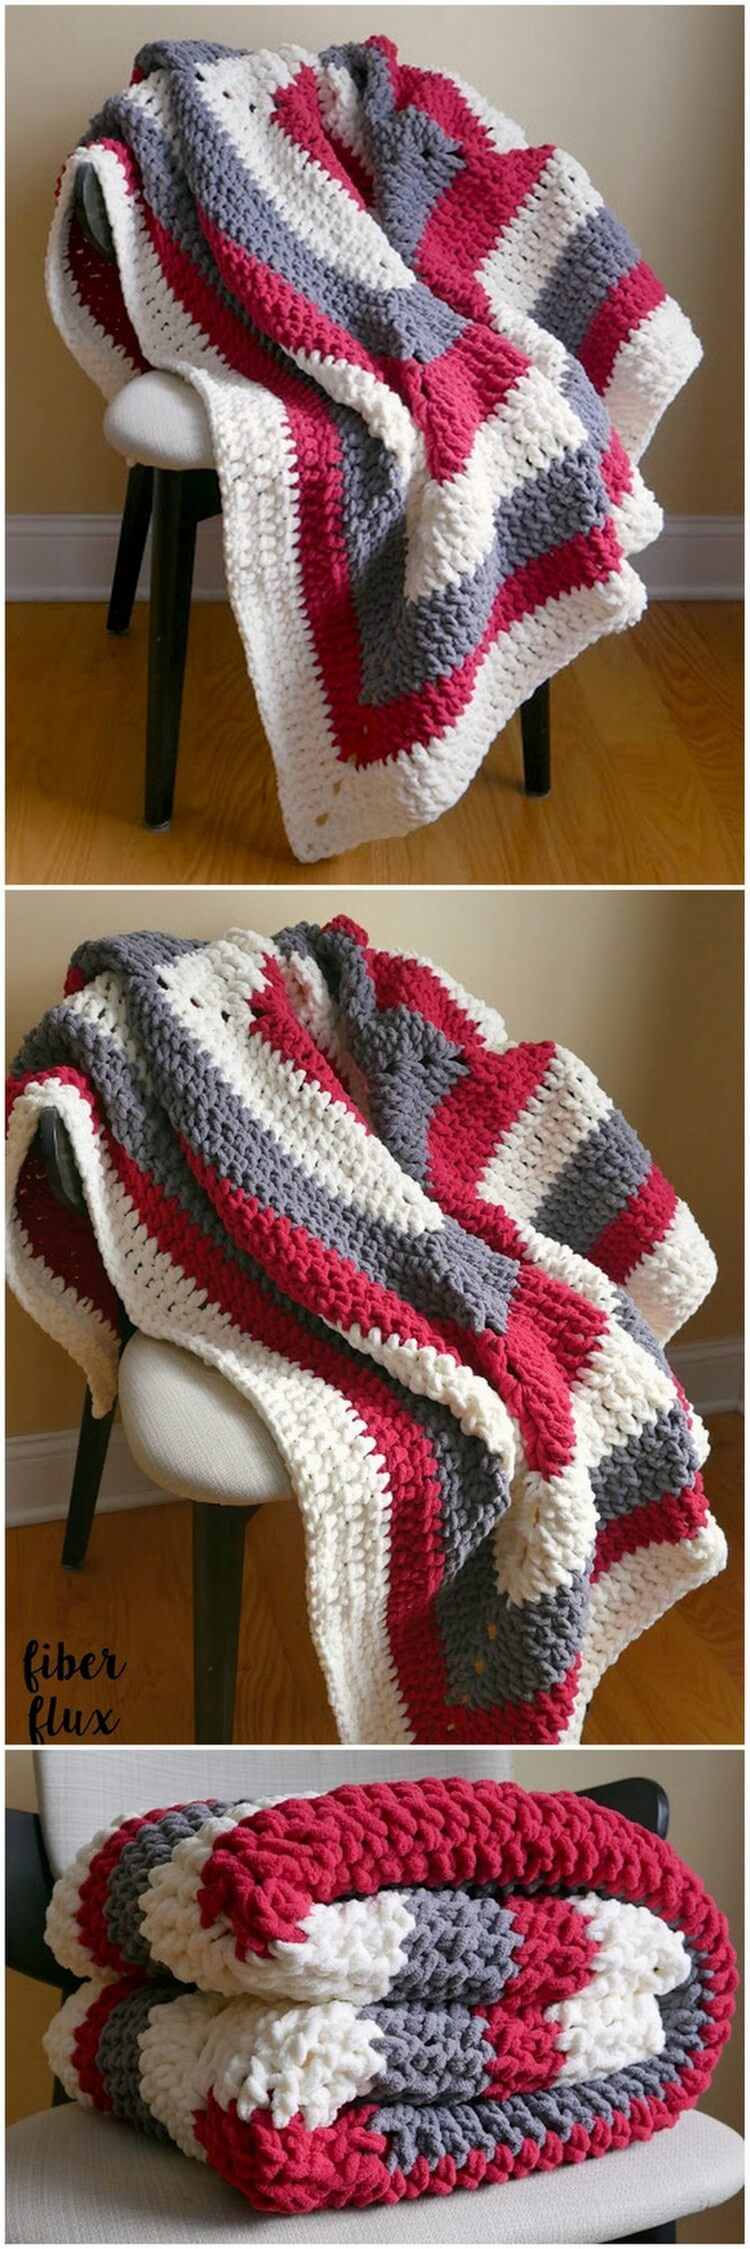 Crochet Blanket Pattern (58)